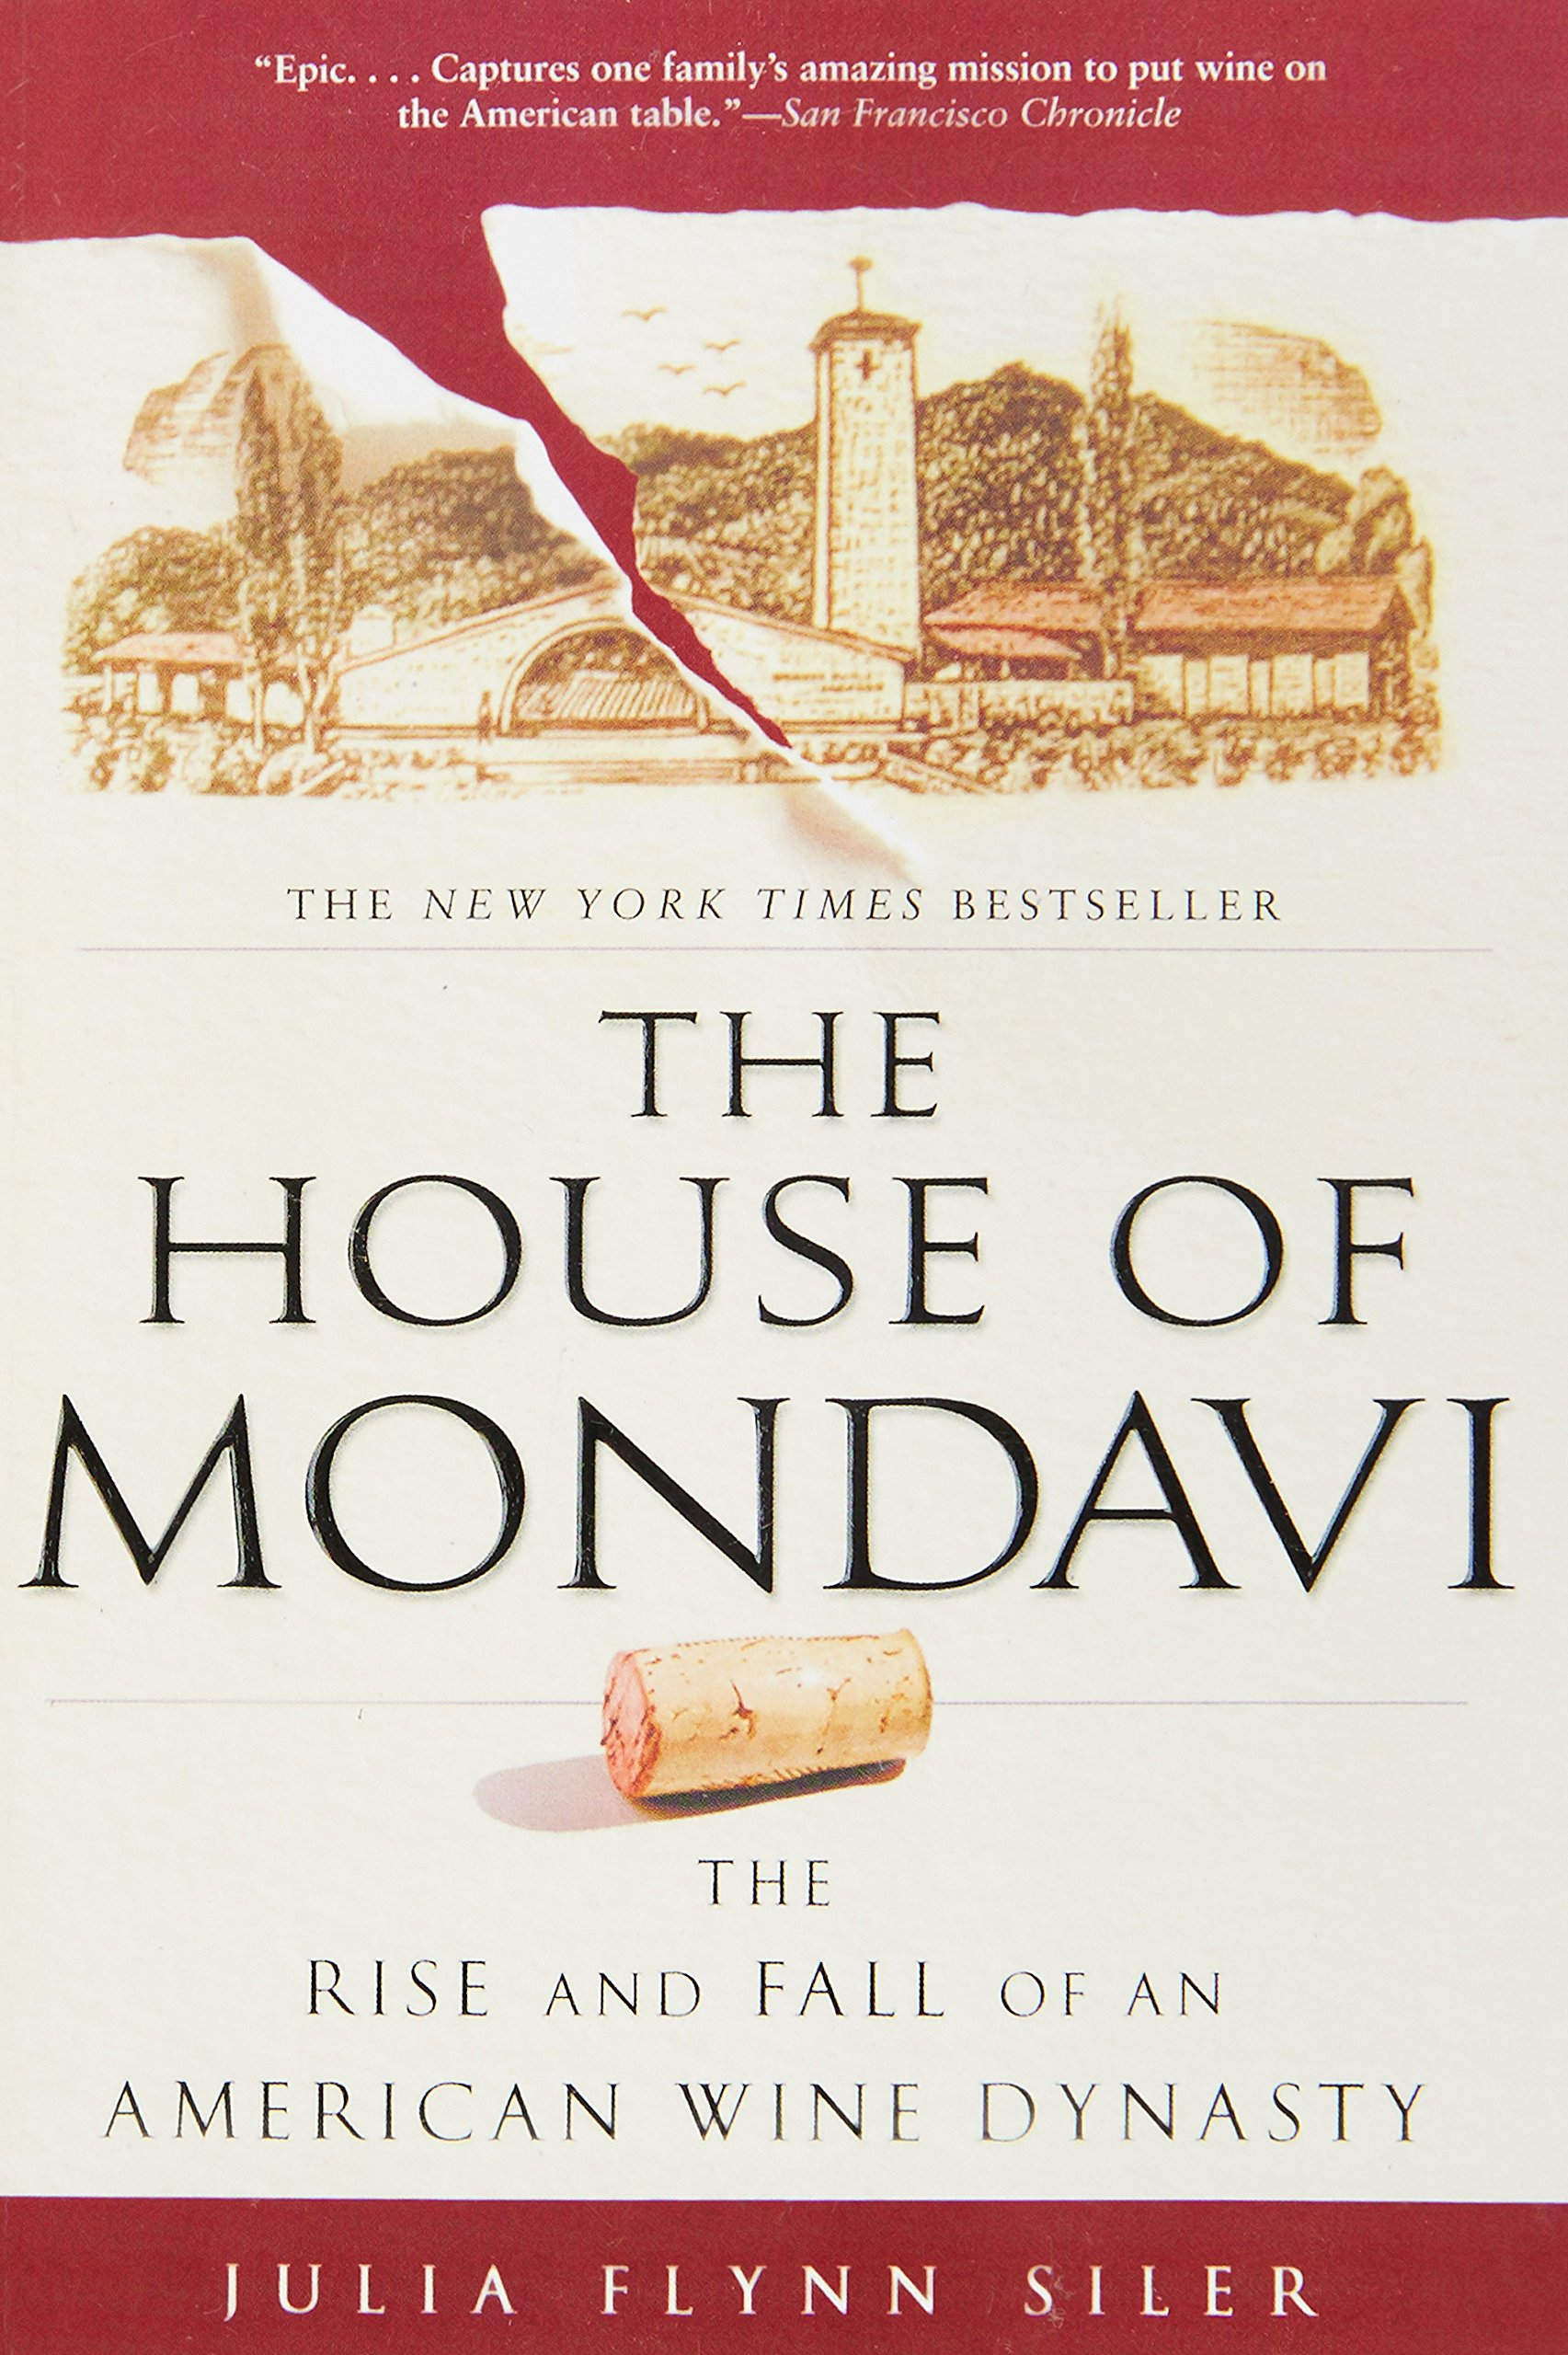 The House of Mondavi: The Rise and Fall of an American Wine Dynasty - by Julia Flynn Siler